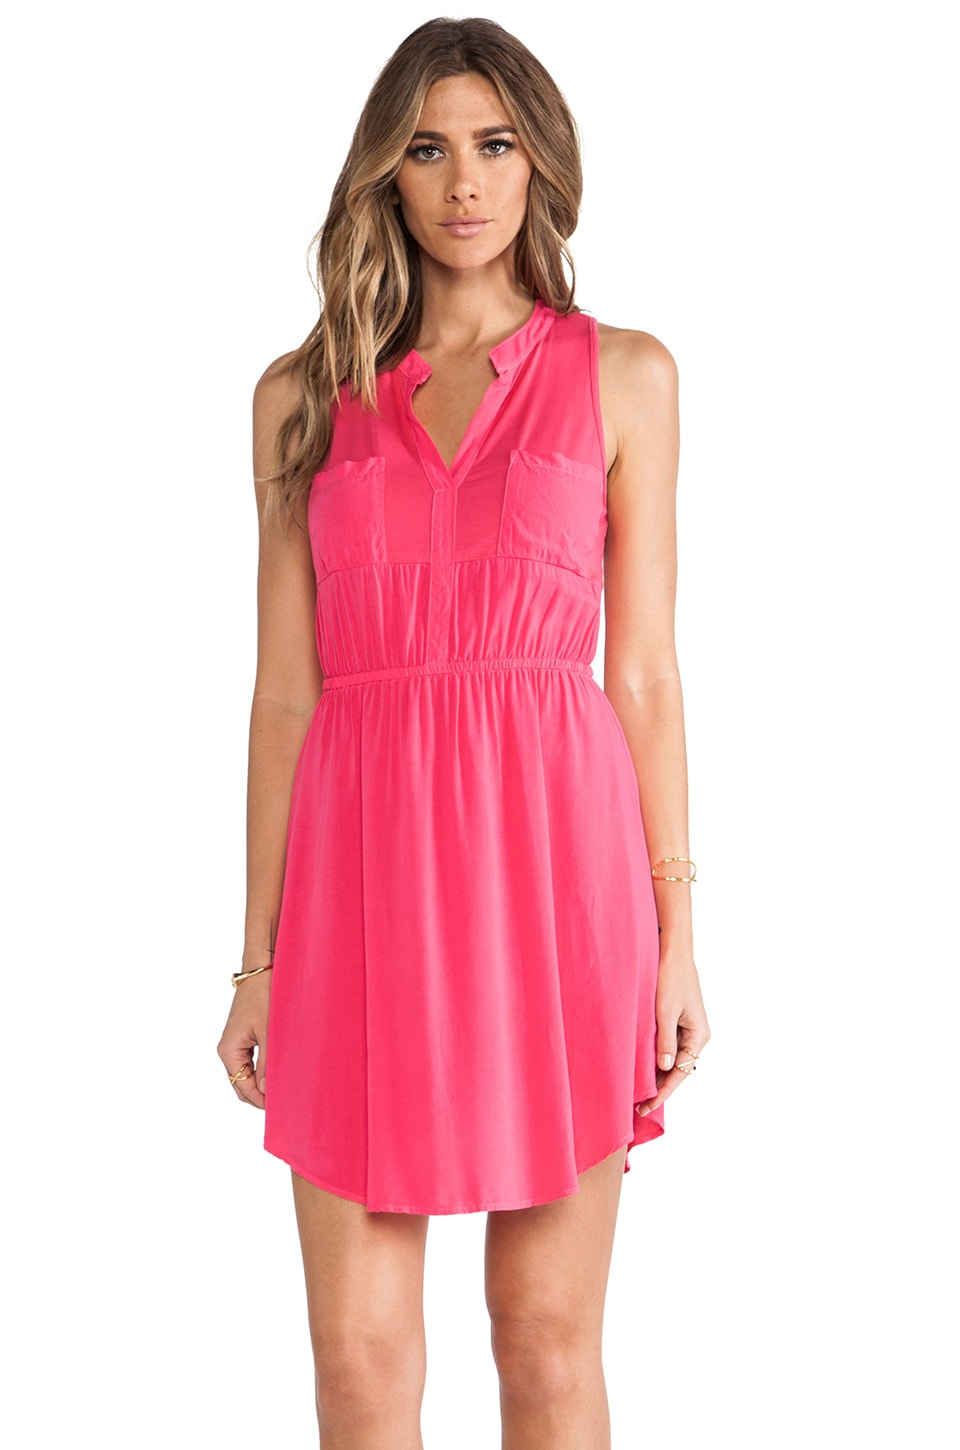 Splendid Dress in Flamingo